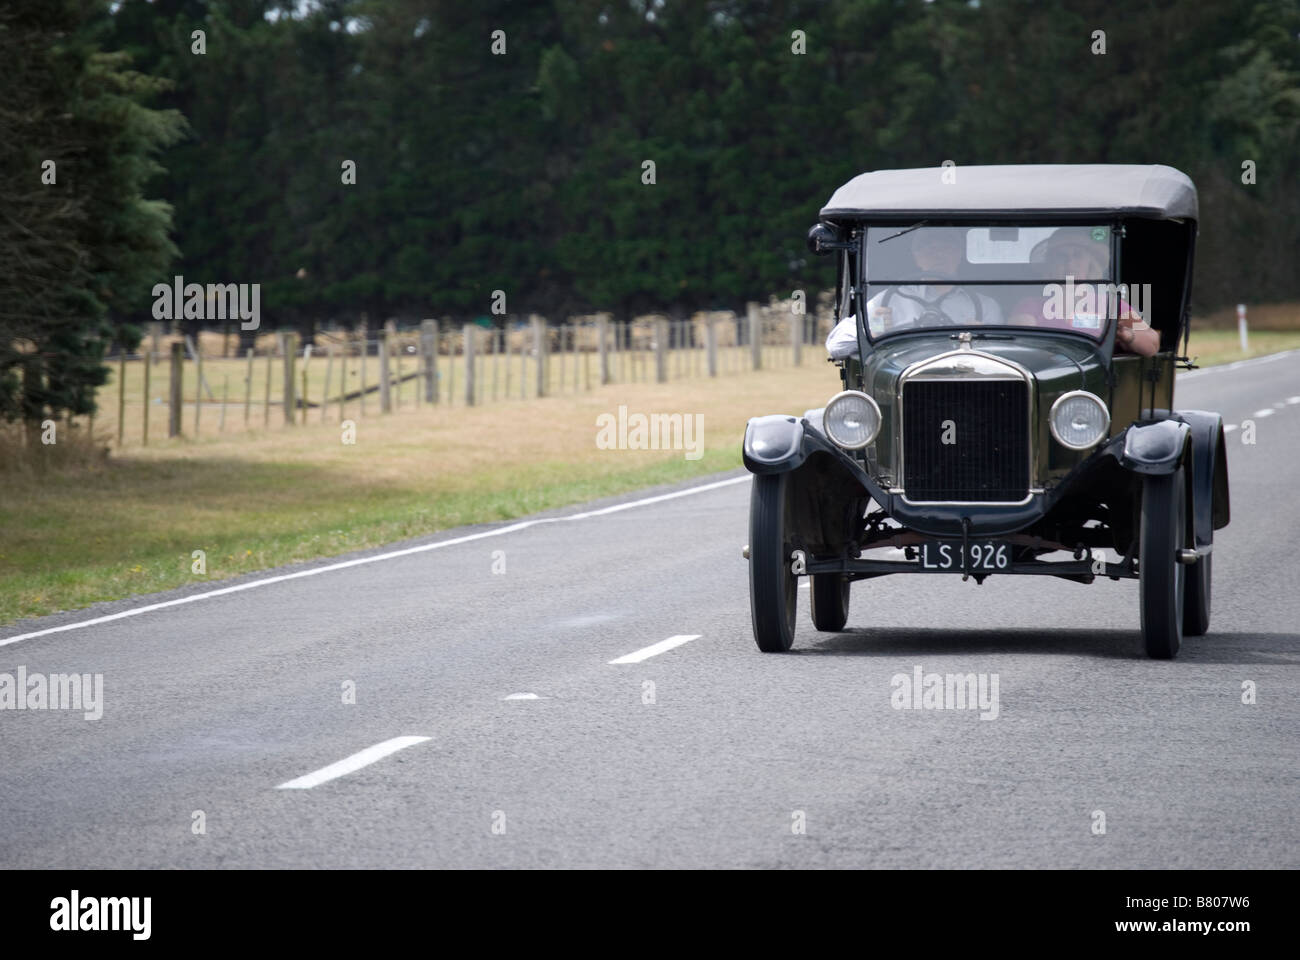 Vintage car on Highway 72, near Oxford, Canterbury, New Zealand - Stock Image